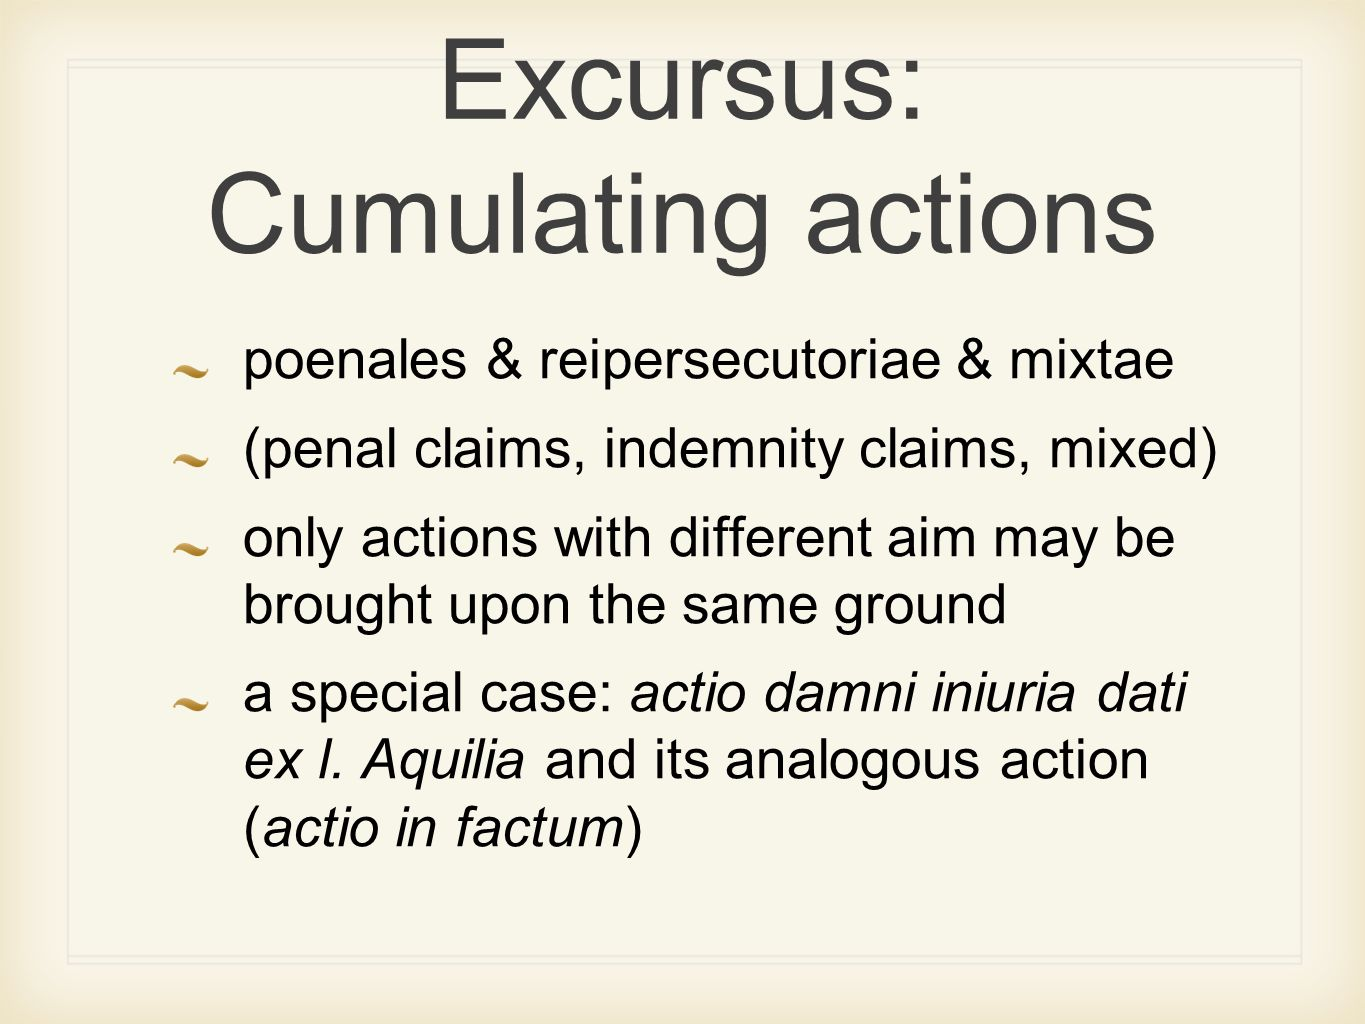 Excursus: Cumulating actions poenales & reipersecutoriae & mixtae (penal claims, indemnity claims, mixed) only actions with different aim may be brought upon the same ground a special case: actio damni iniuria dati ex l.